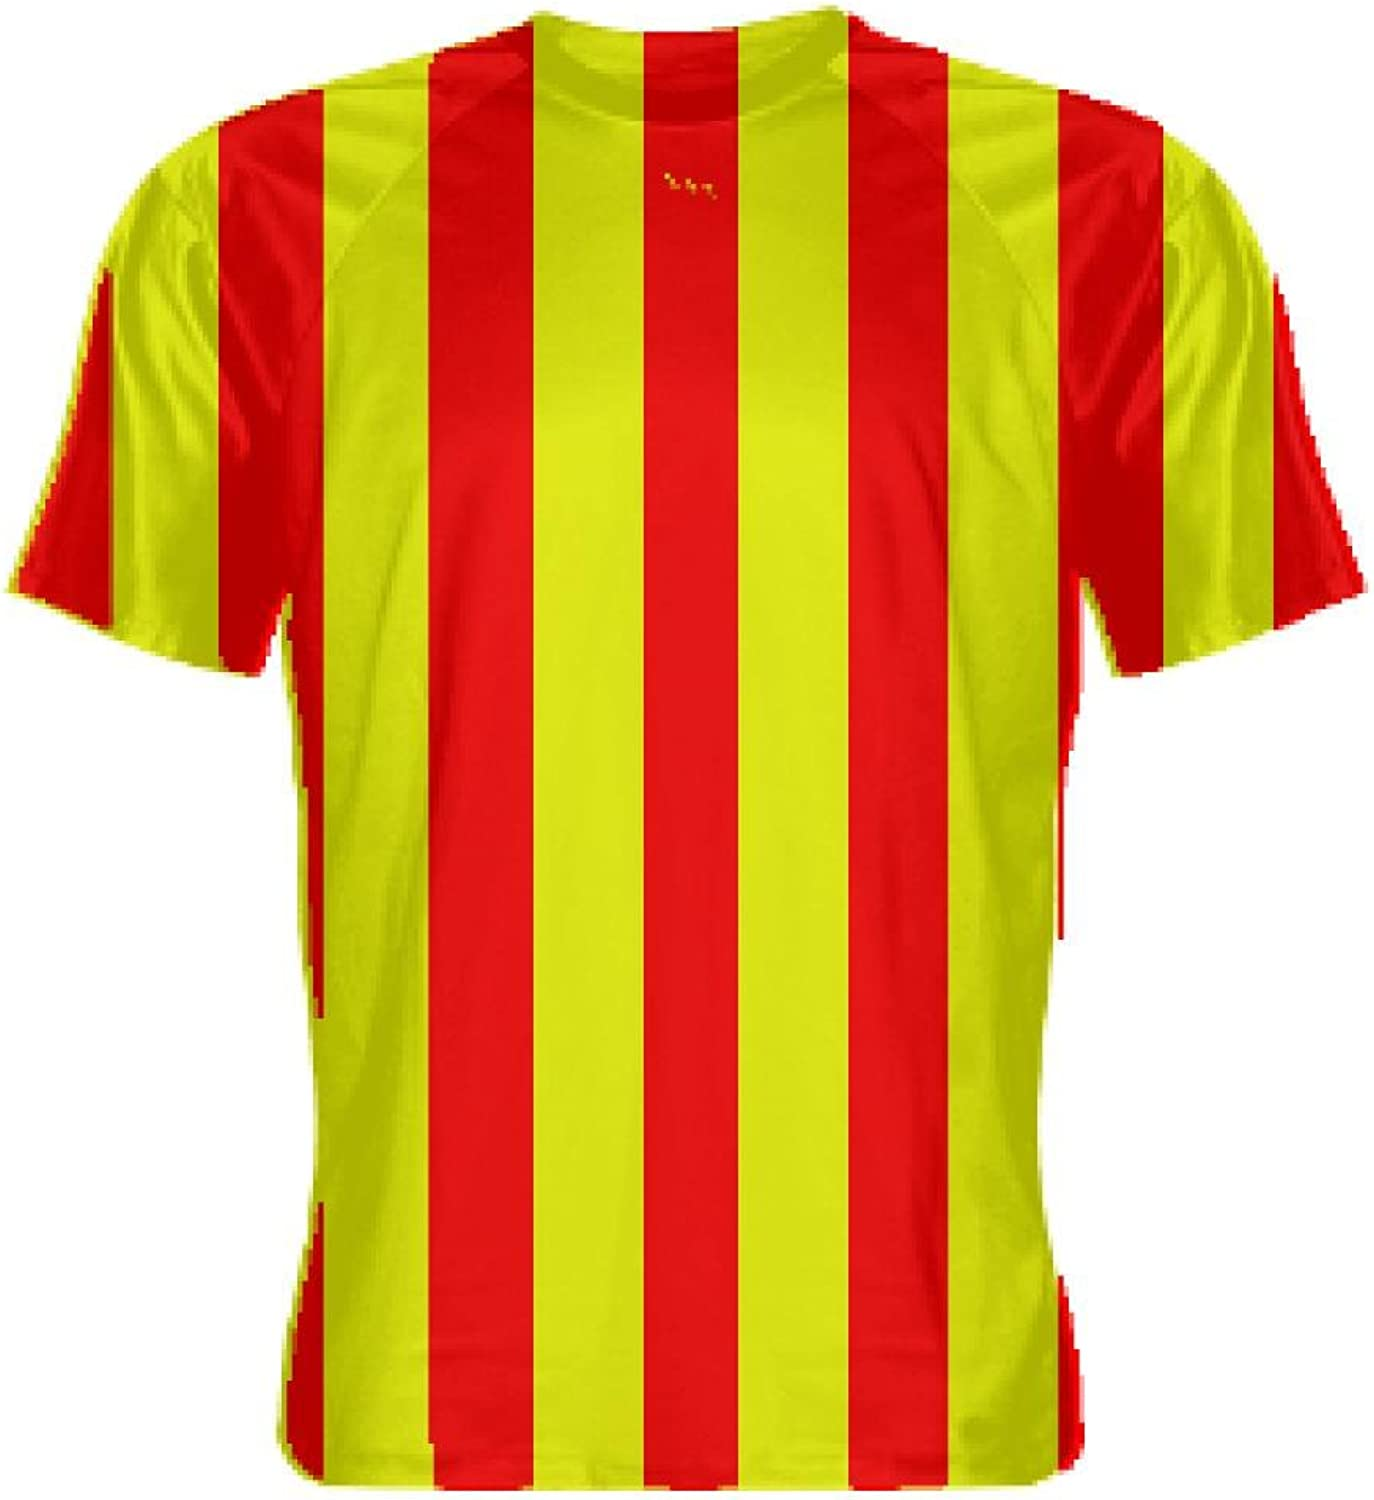 LightningWear Red and Yellow Striped Soccer UniformsStriped Soccer Shirts